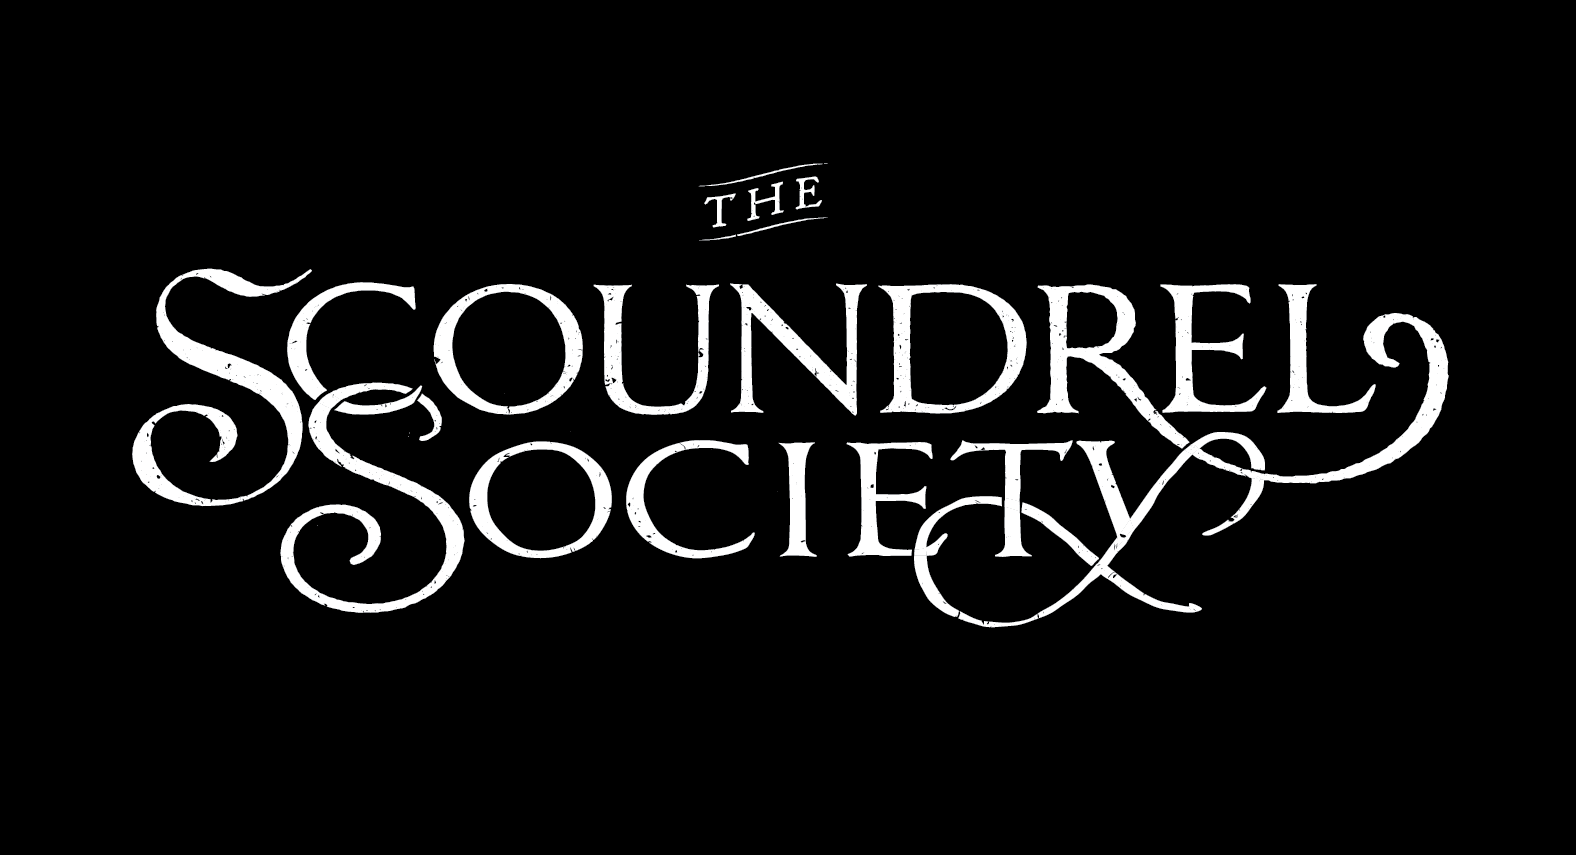 Society-Logo-White-Text-On-Black.png